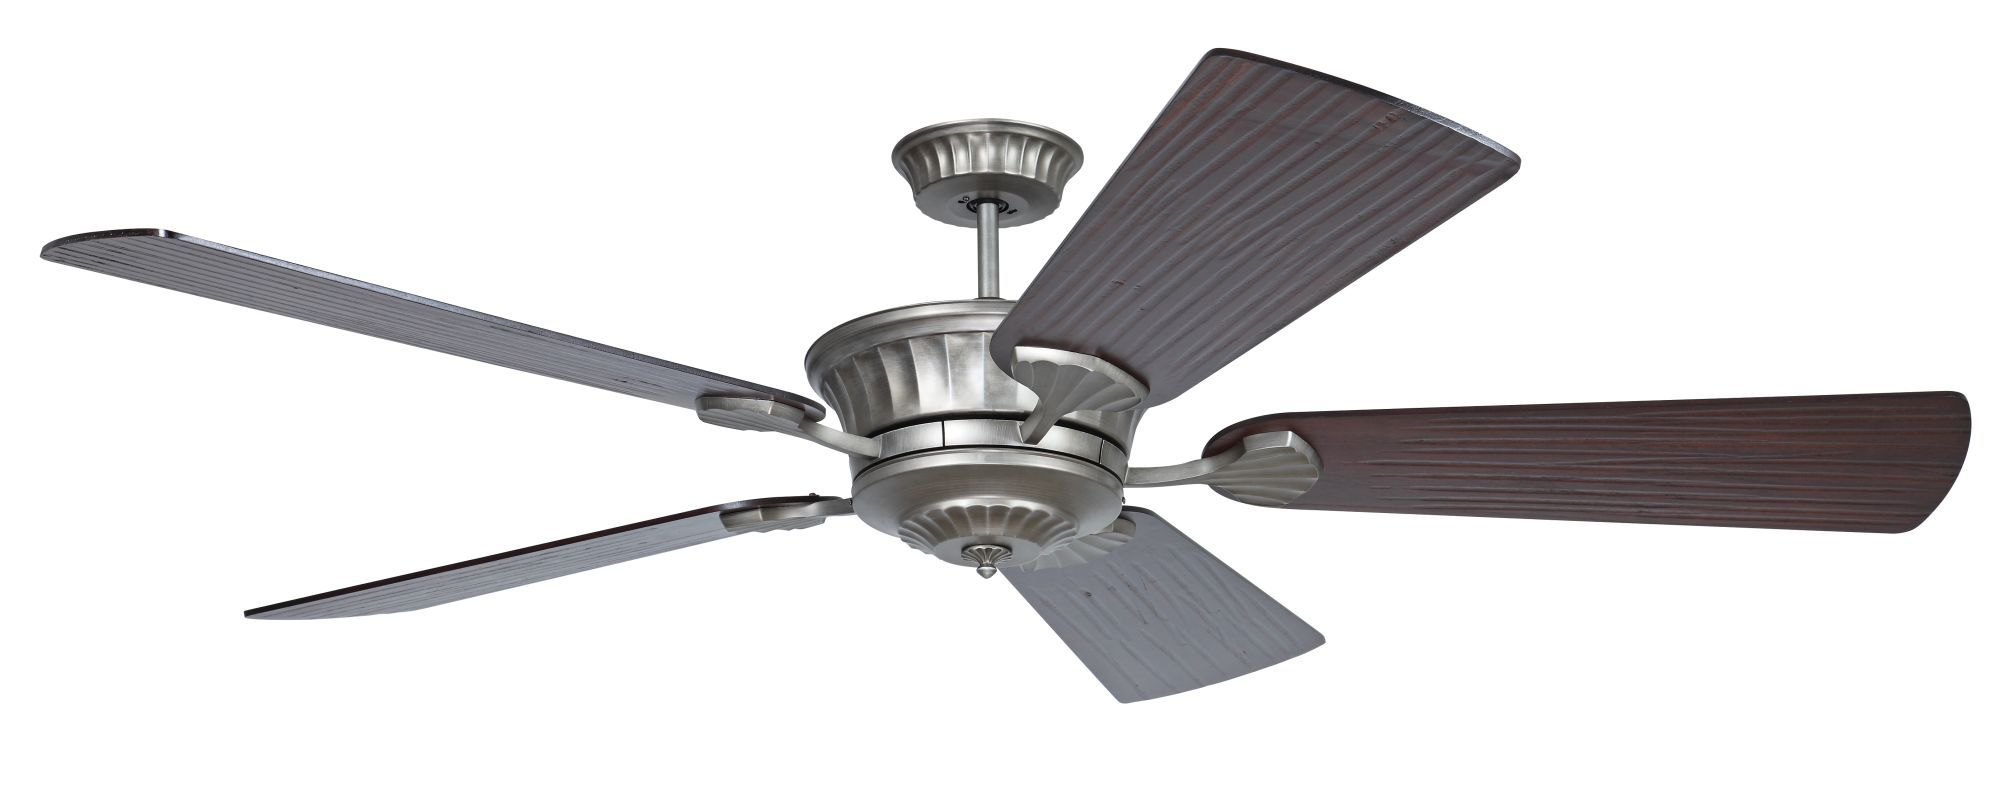 """Craftmade DCEP70 DC Epic 70"""" 5 Blade DC Motor Indoor Ceiling Fan - Remote Includ Pewter Fans Ceiling Fans Indoor Ceiling Fans"""